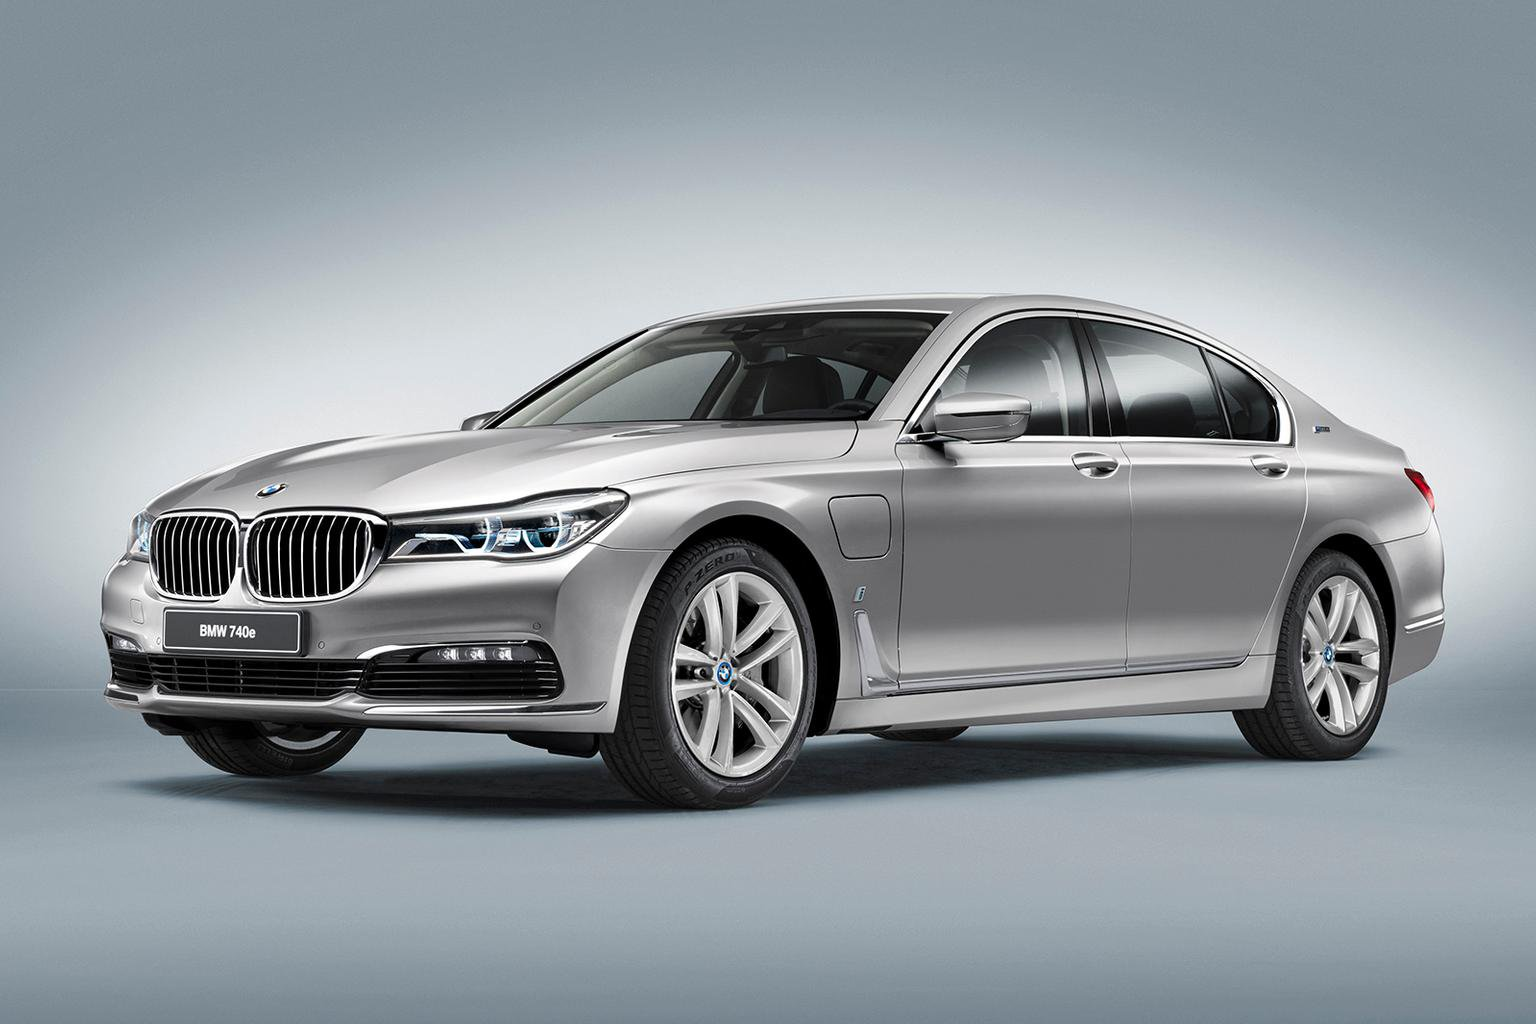 New hybrid BMW 7 Series revealed